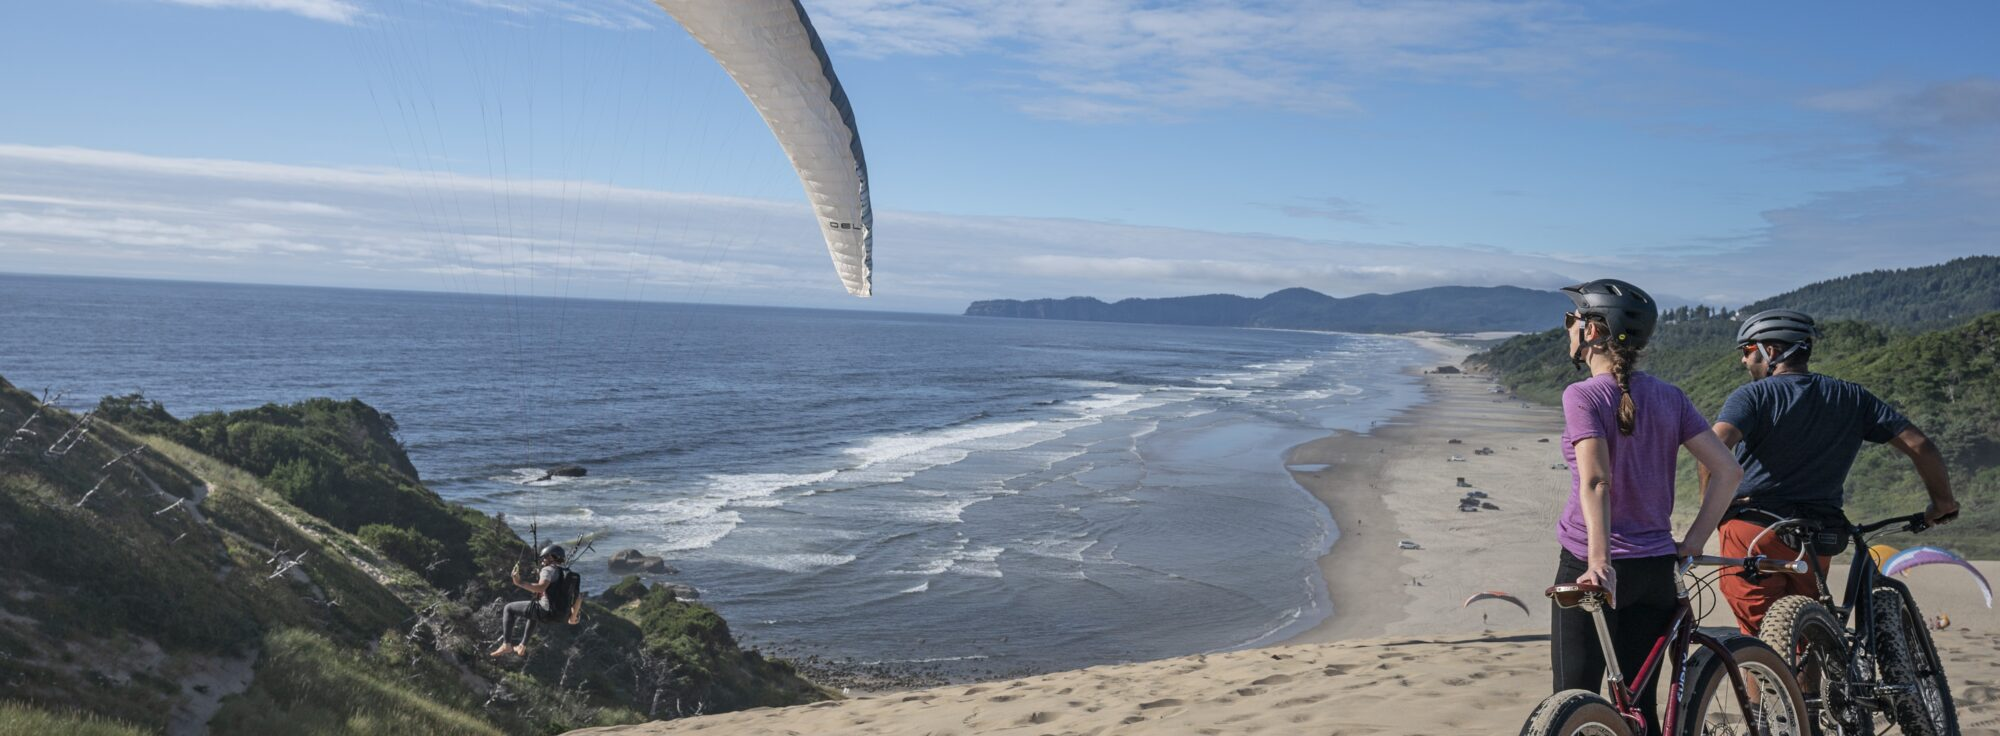 Two cyclists riding through the sand with a view of a hang glider and the ocean in Pacific City.